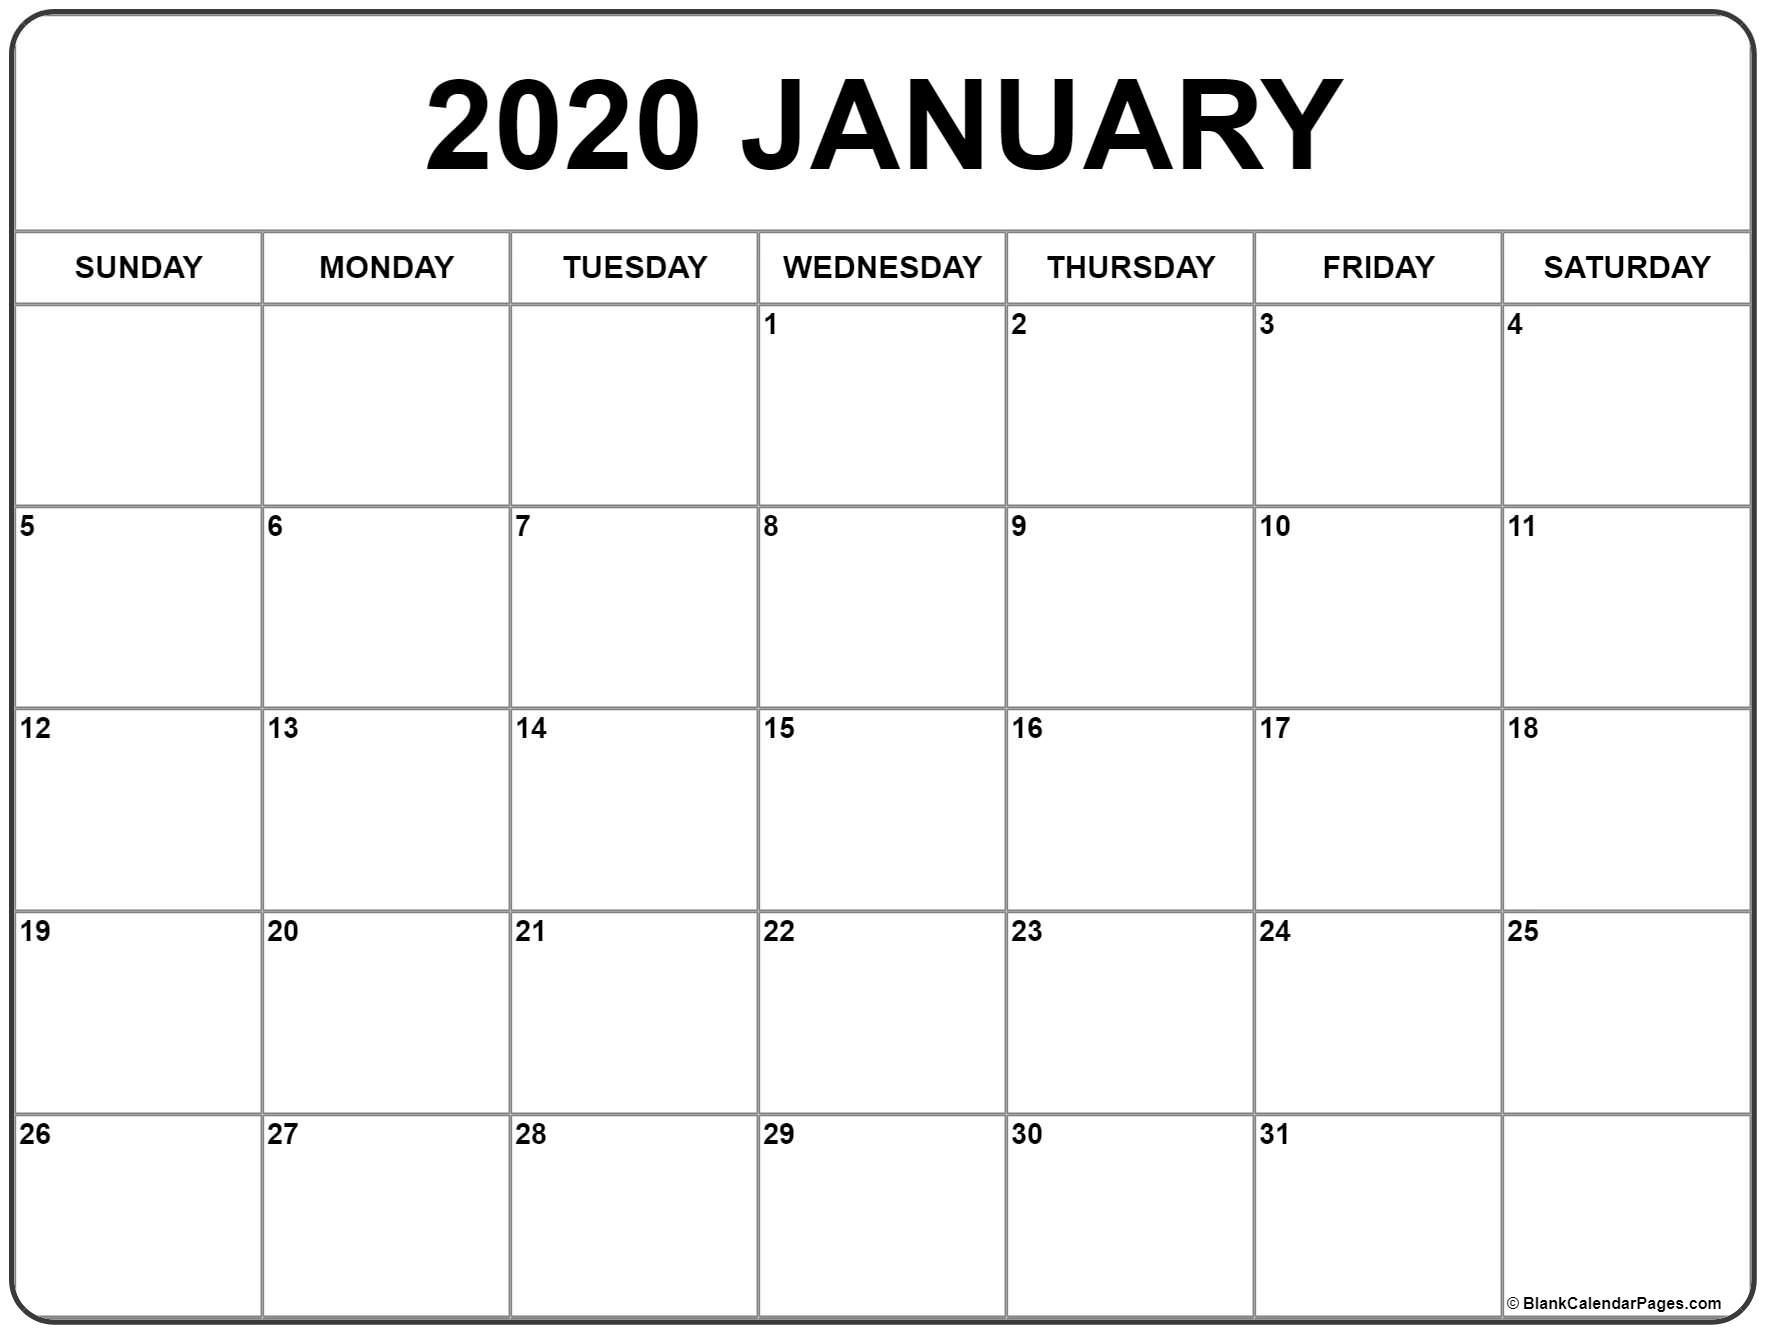 January 2020 Calendar | Free Printable Monthly Calendars-Printable Bill Calendar 2020 Monthly